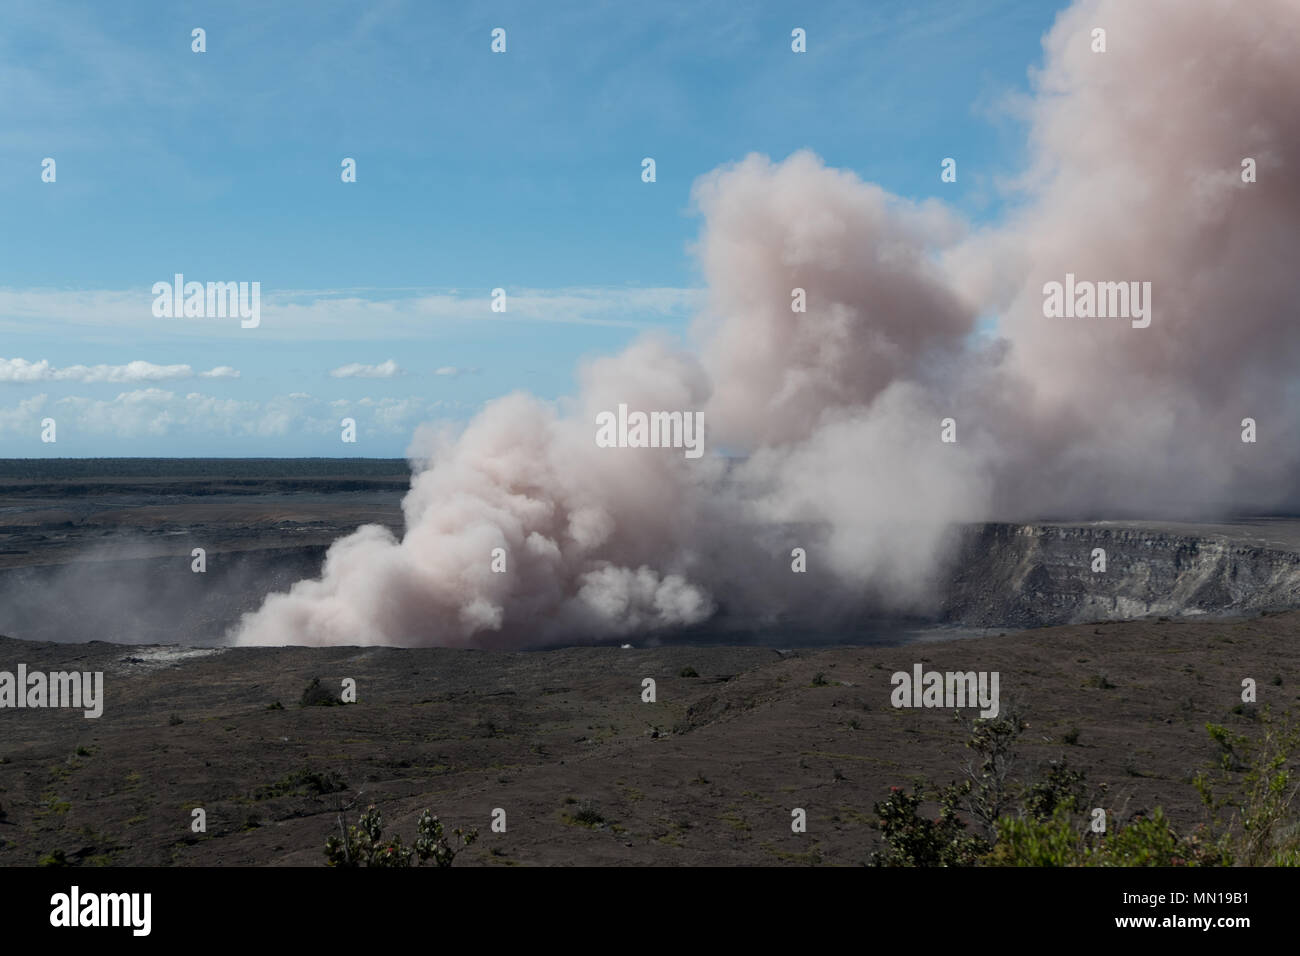 Hawaii, USA 12th May 2018. A grey ash plume rises from the Kilauea volcano May 11, 2018 in Hawaii. The recent eruption continues destroying homes, forcing evacuations and spewing lava and poison gas on the Big Island of Hawaii. Credit: Planetpix/Alamy Live NewsStock Photo